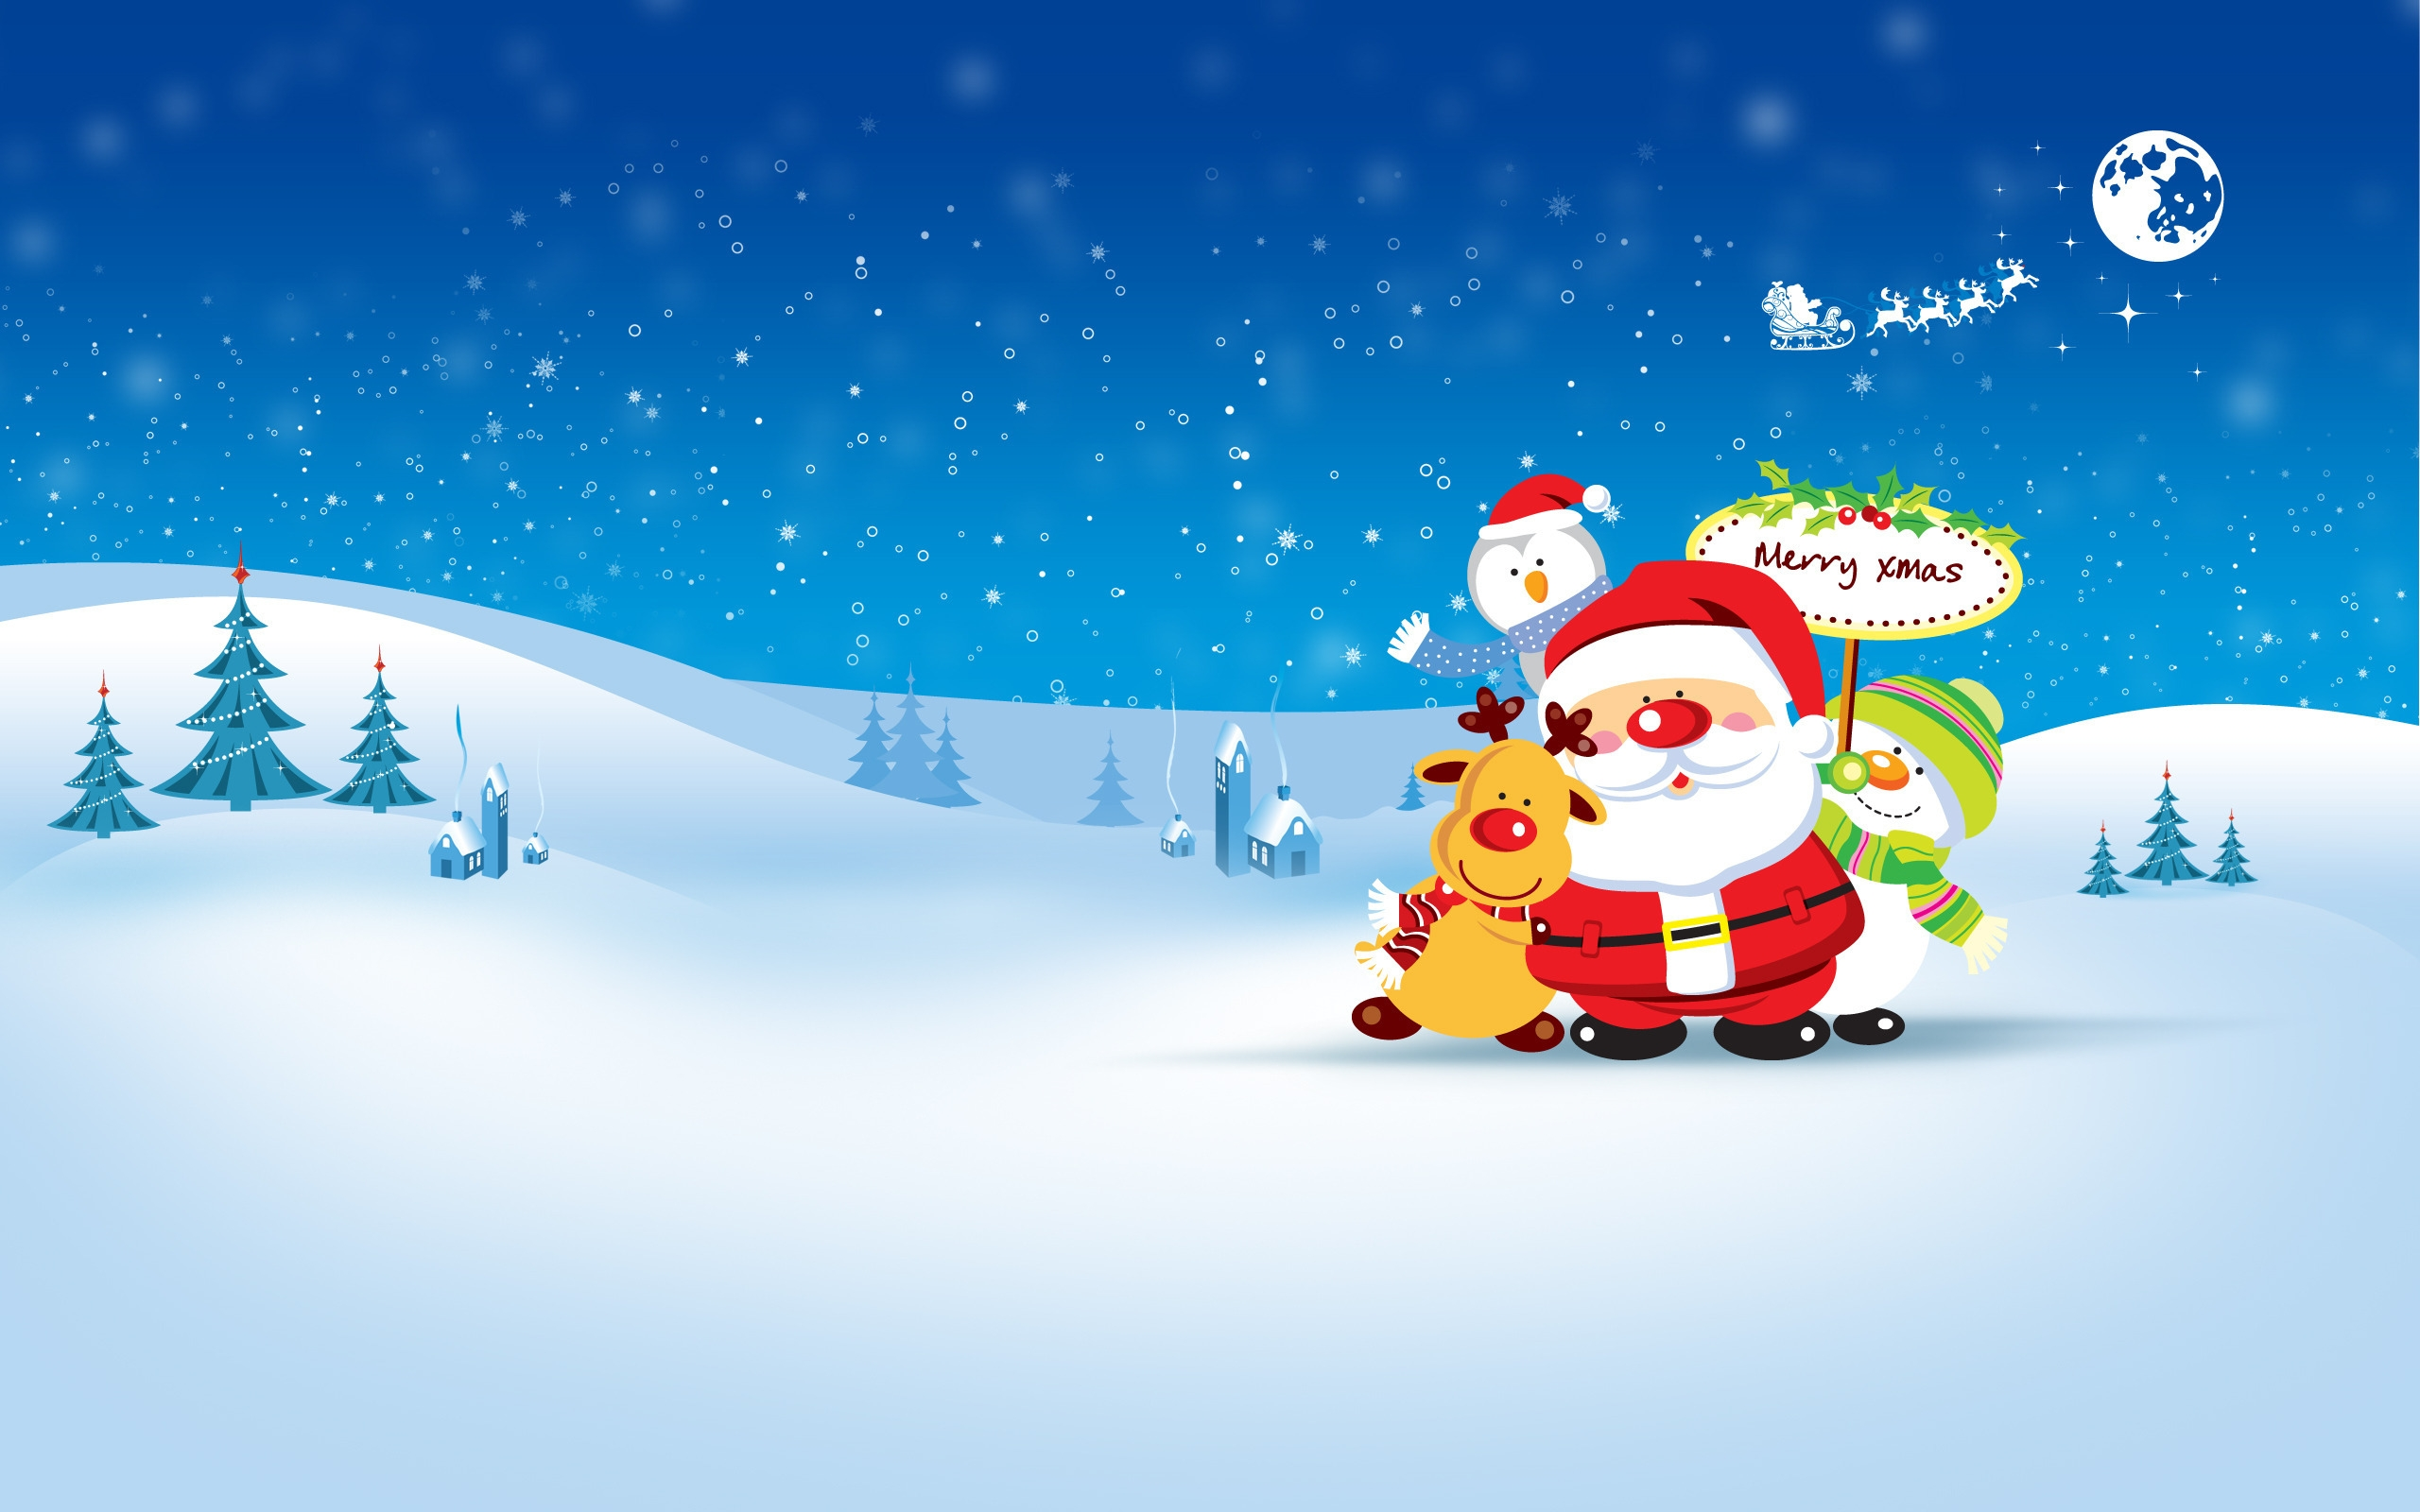 merry-christmas-santa-clousewallpaper-2560x1600